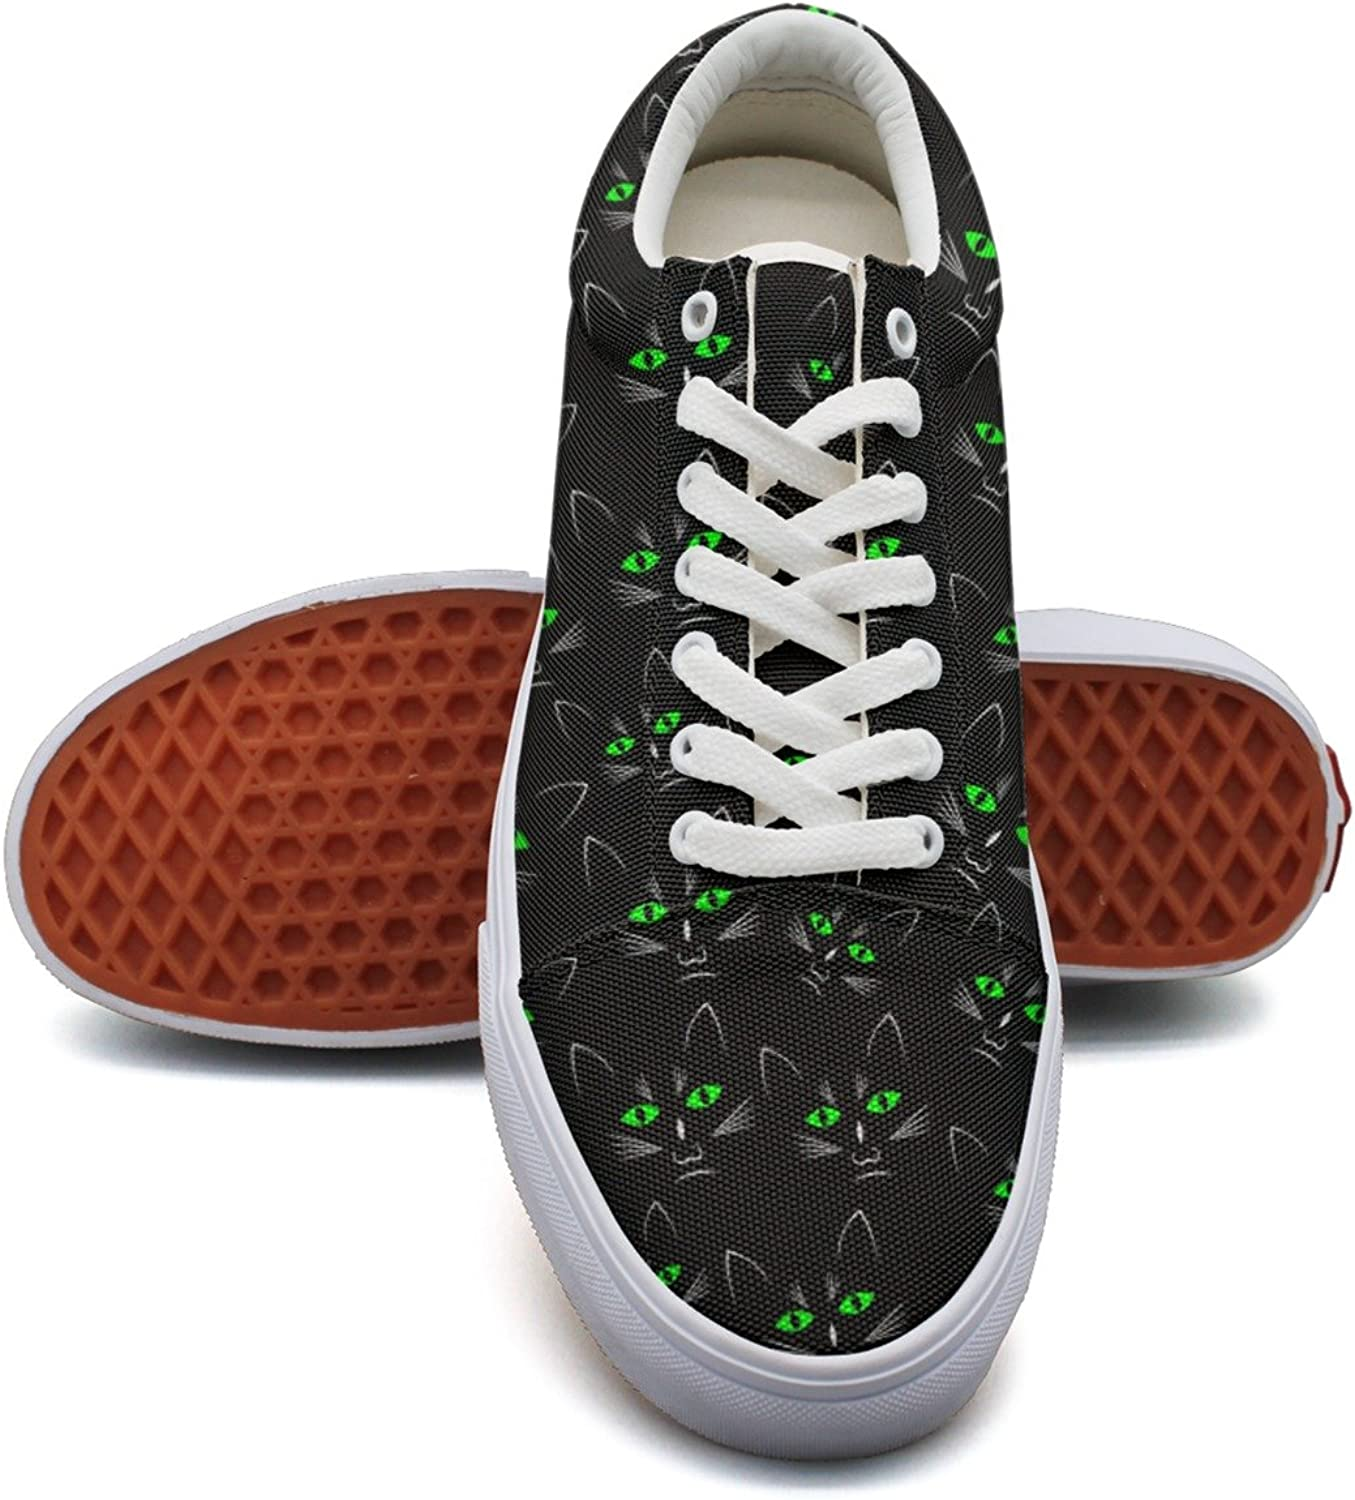 Feenfling Black Cats Green Light Eye Womens Casual Canvas shoes Low Top Cool Sneaker for Women Girls